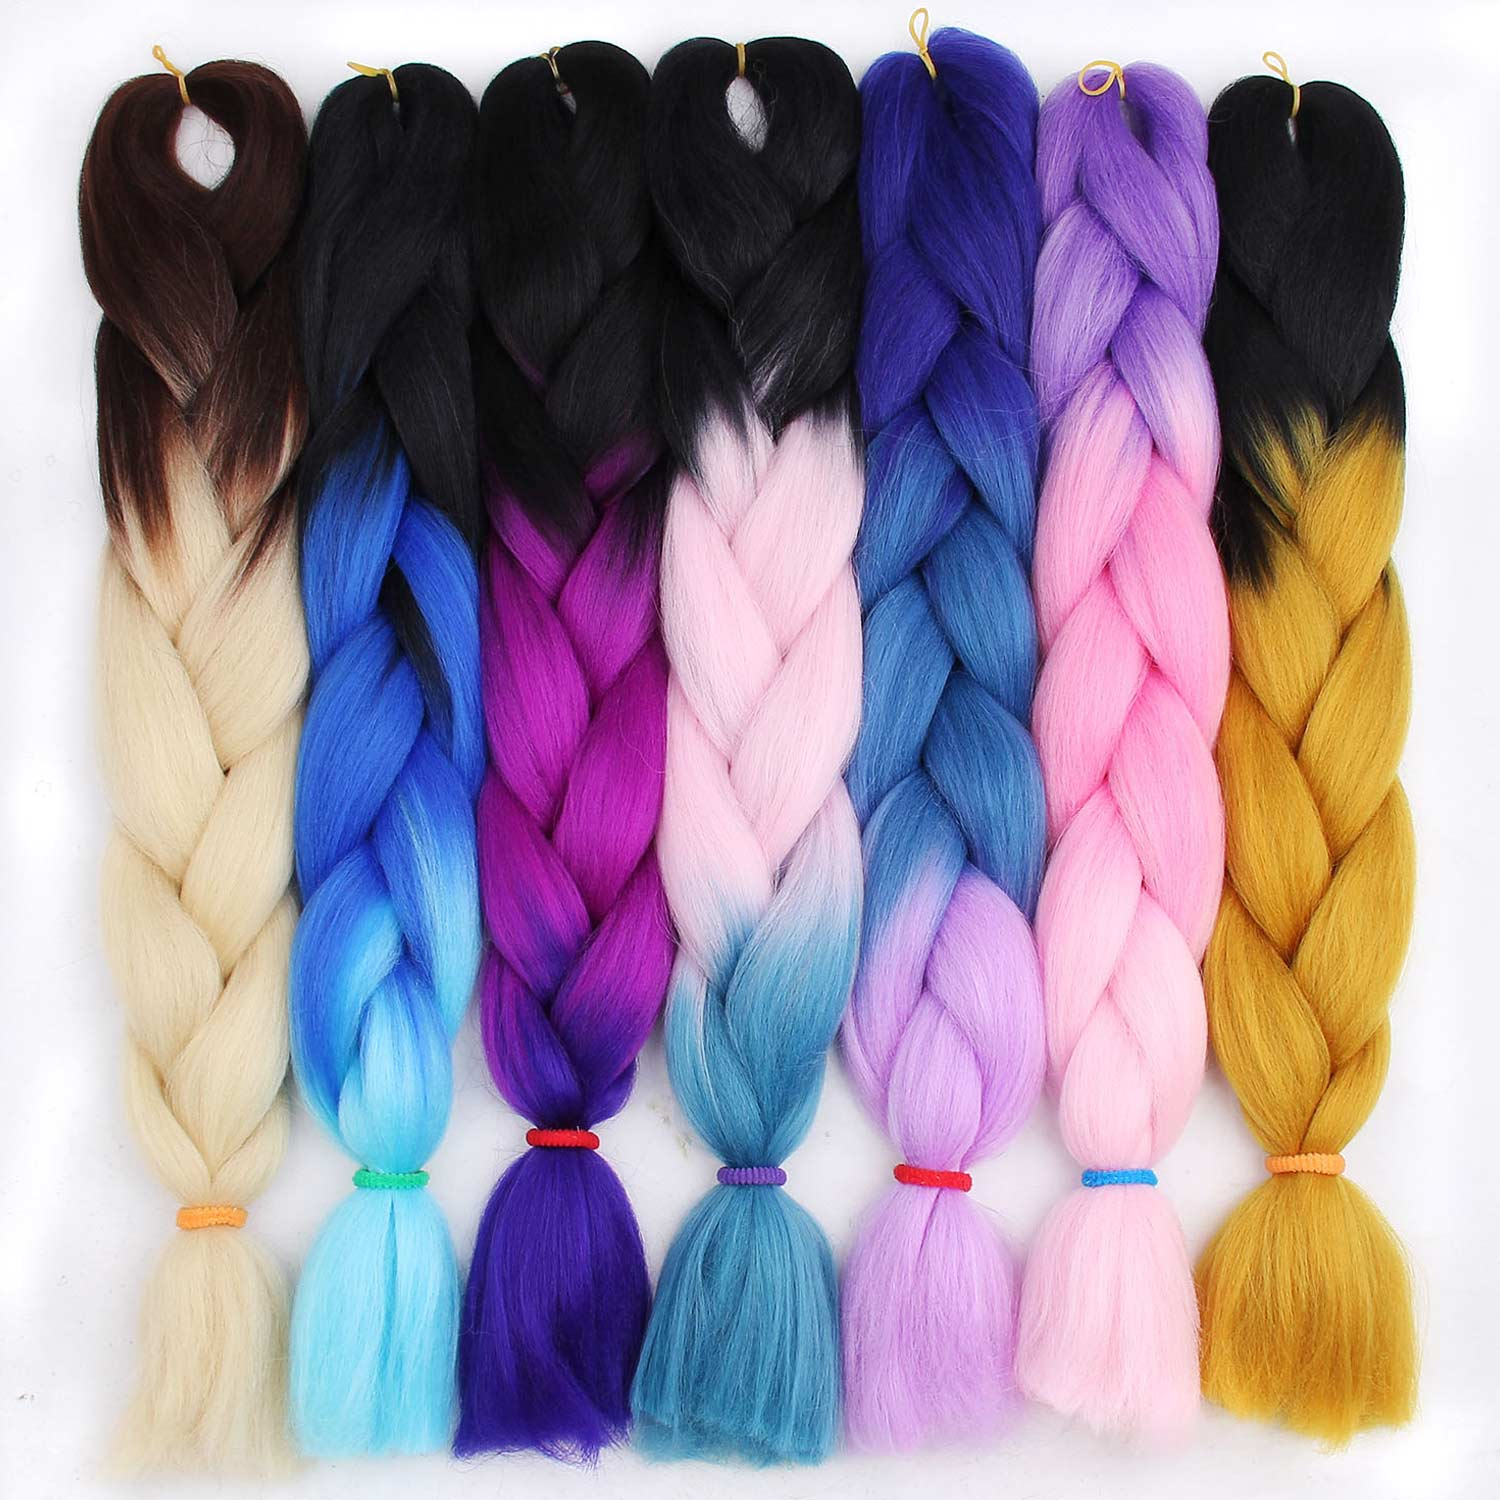 Jumbo Braids Aisi Beauty 100g/pack 24inch Kanekalon Jumbo Braids Hair Ombre Two Tone Colored Synthetic Hair For Dolls Crochet Hair To Make One Feel At Ease And Energetic Hair Braids